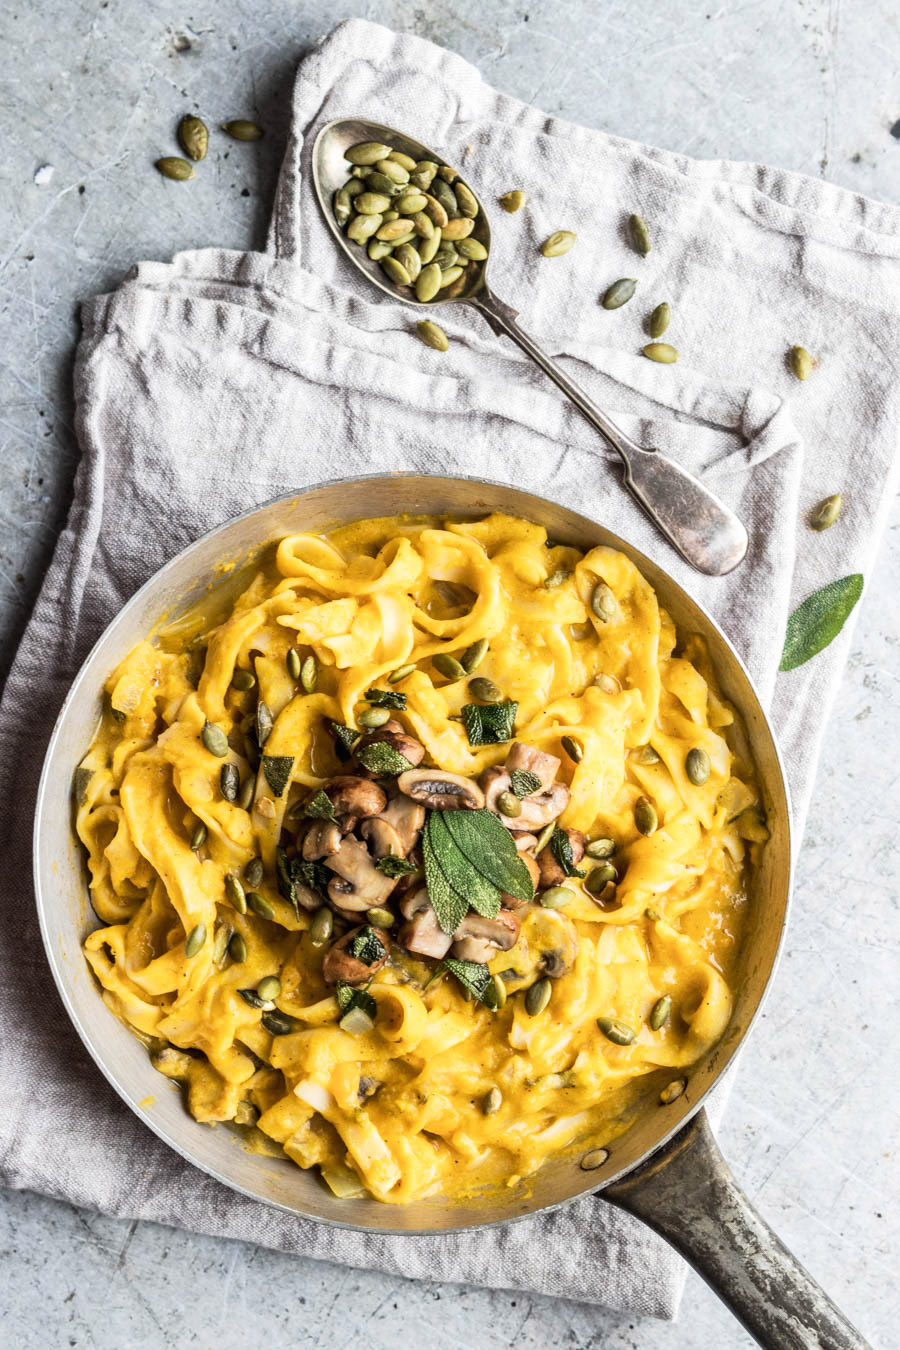 Vegan Pumpkin Fettuccine Alfredo With Sage & Mushrooms